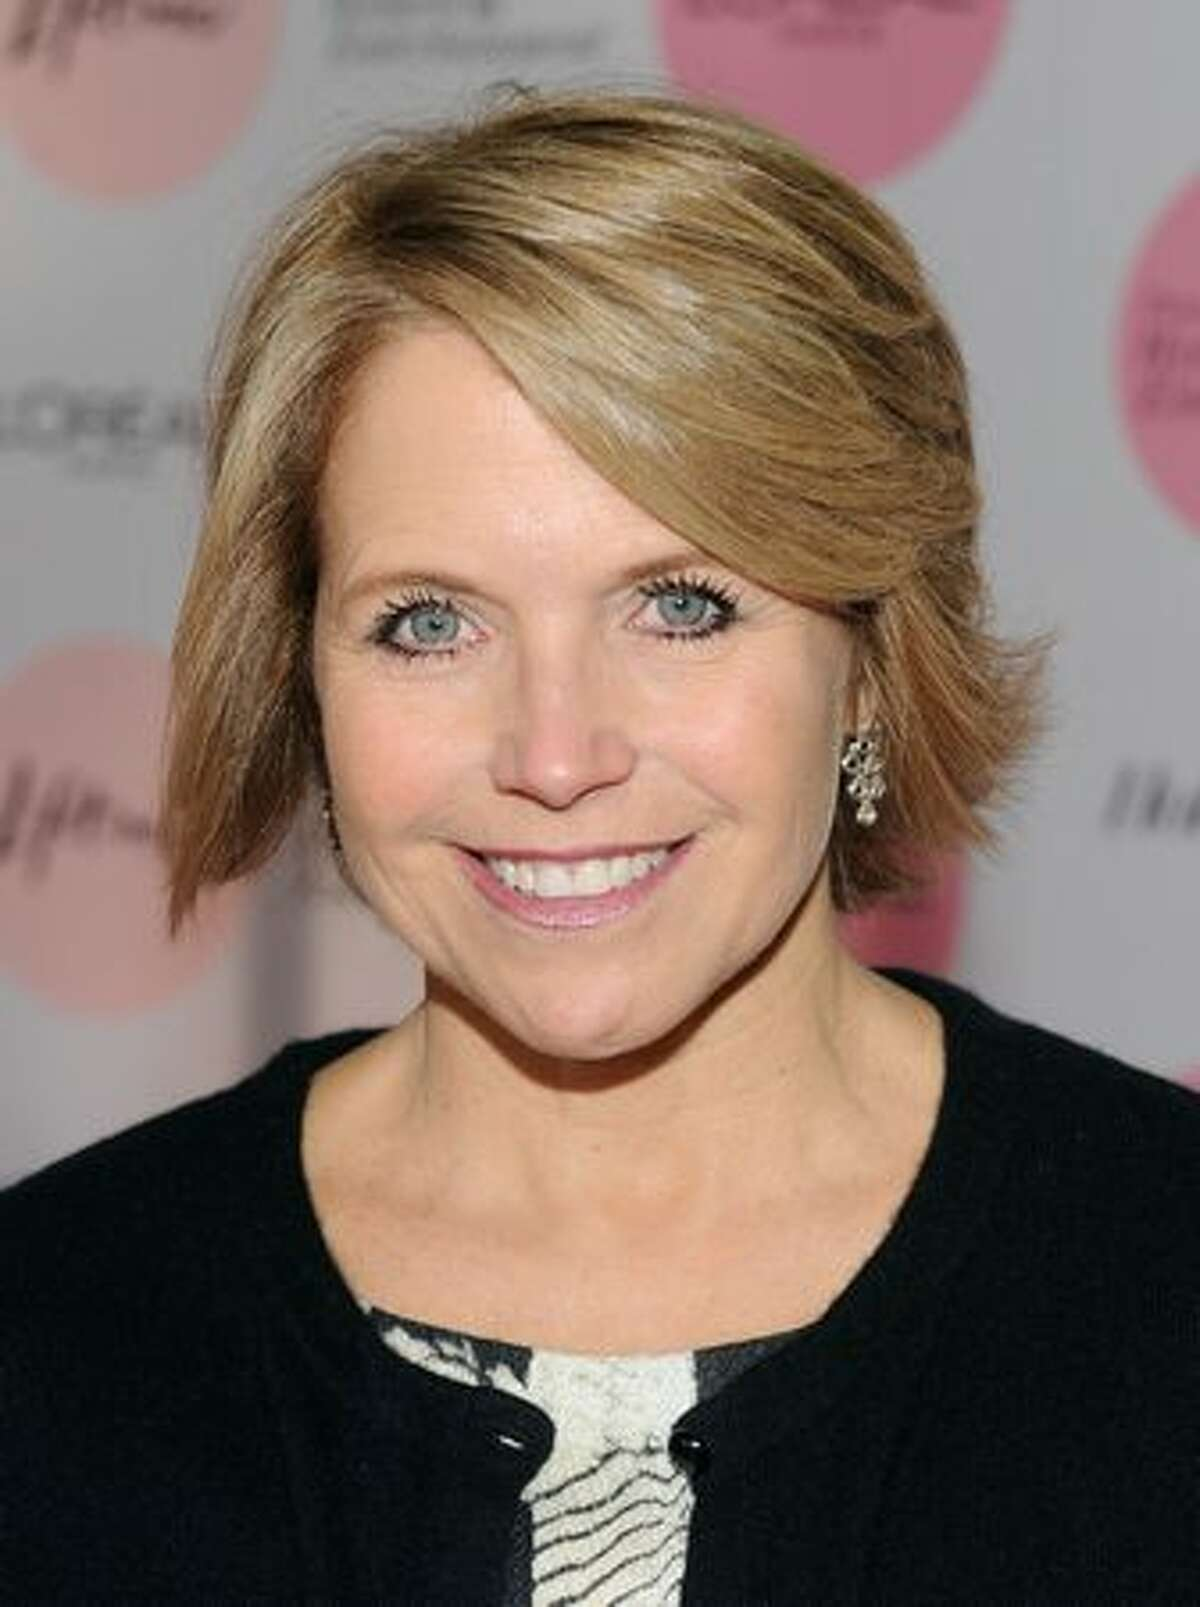 CBS Evening News anchor and managing editor Katie Couric arrive at The Hollywood Reporter's Annual